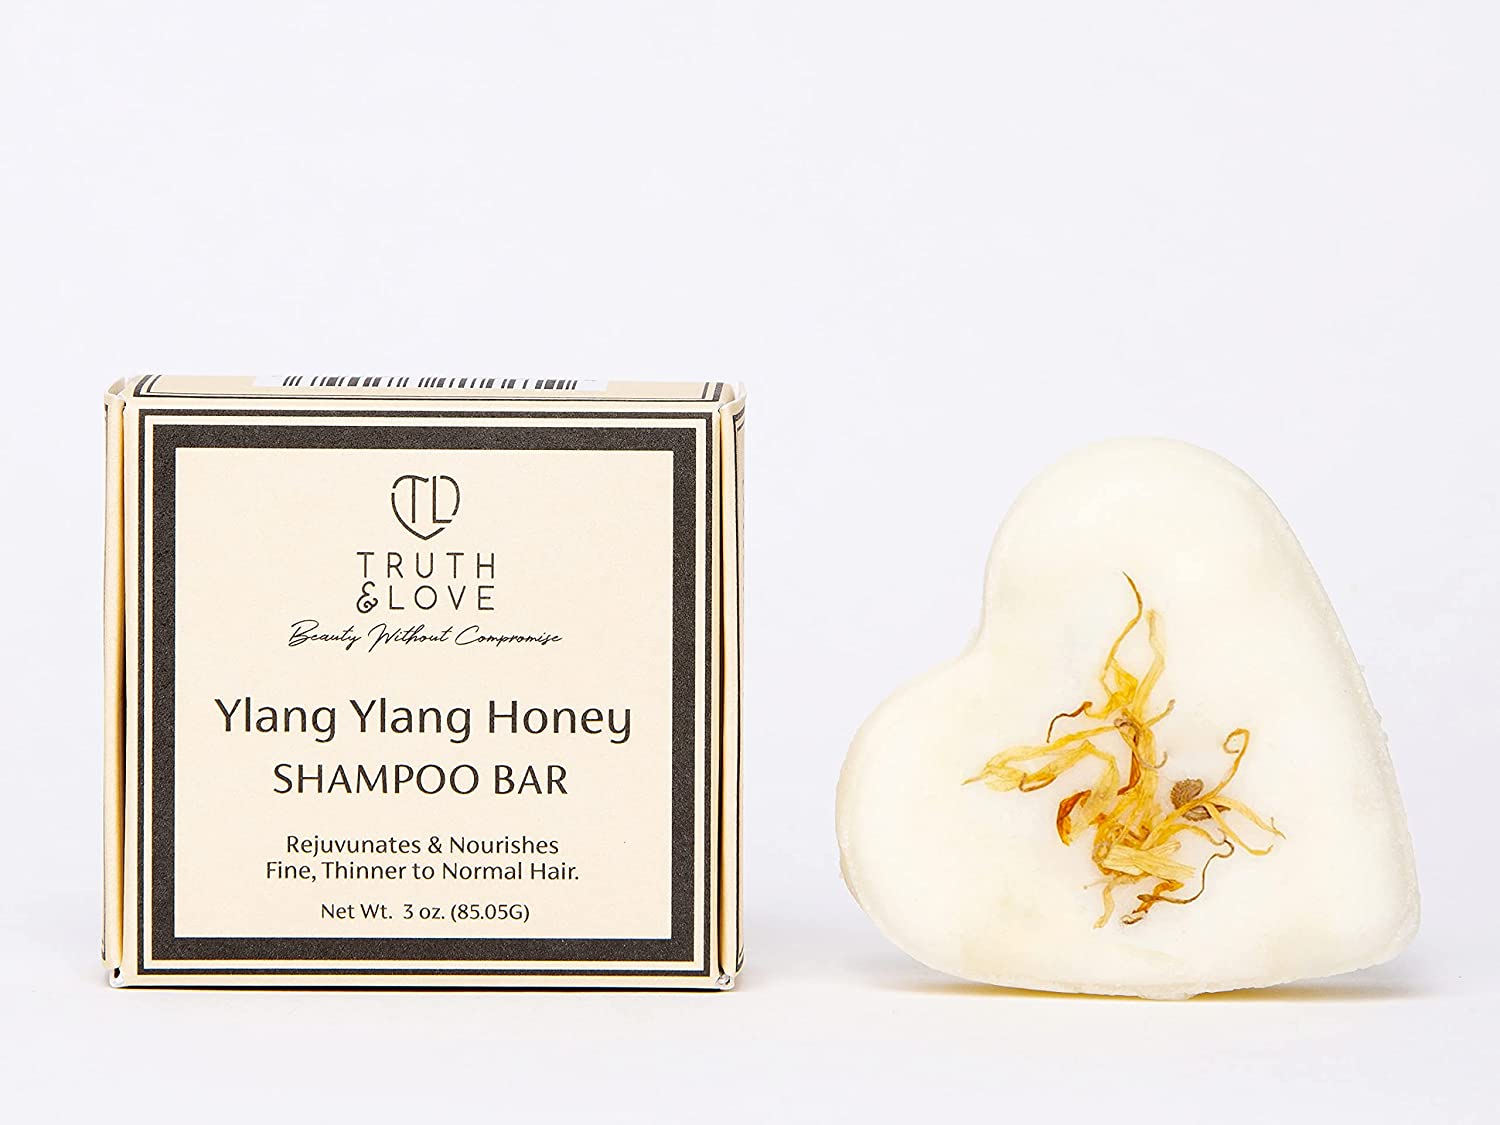 Truth Love Beauty Ylang Honey Bar Mail Popular brand in the world order cheap Thin Fine for Shampoo